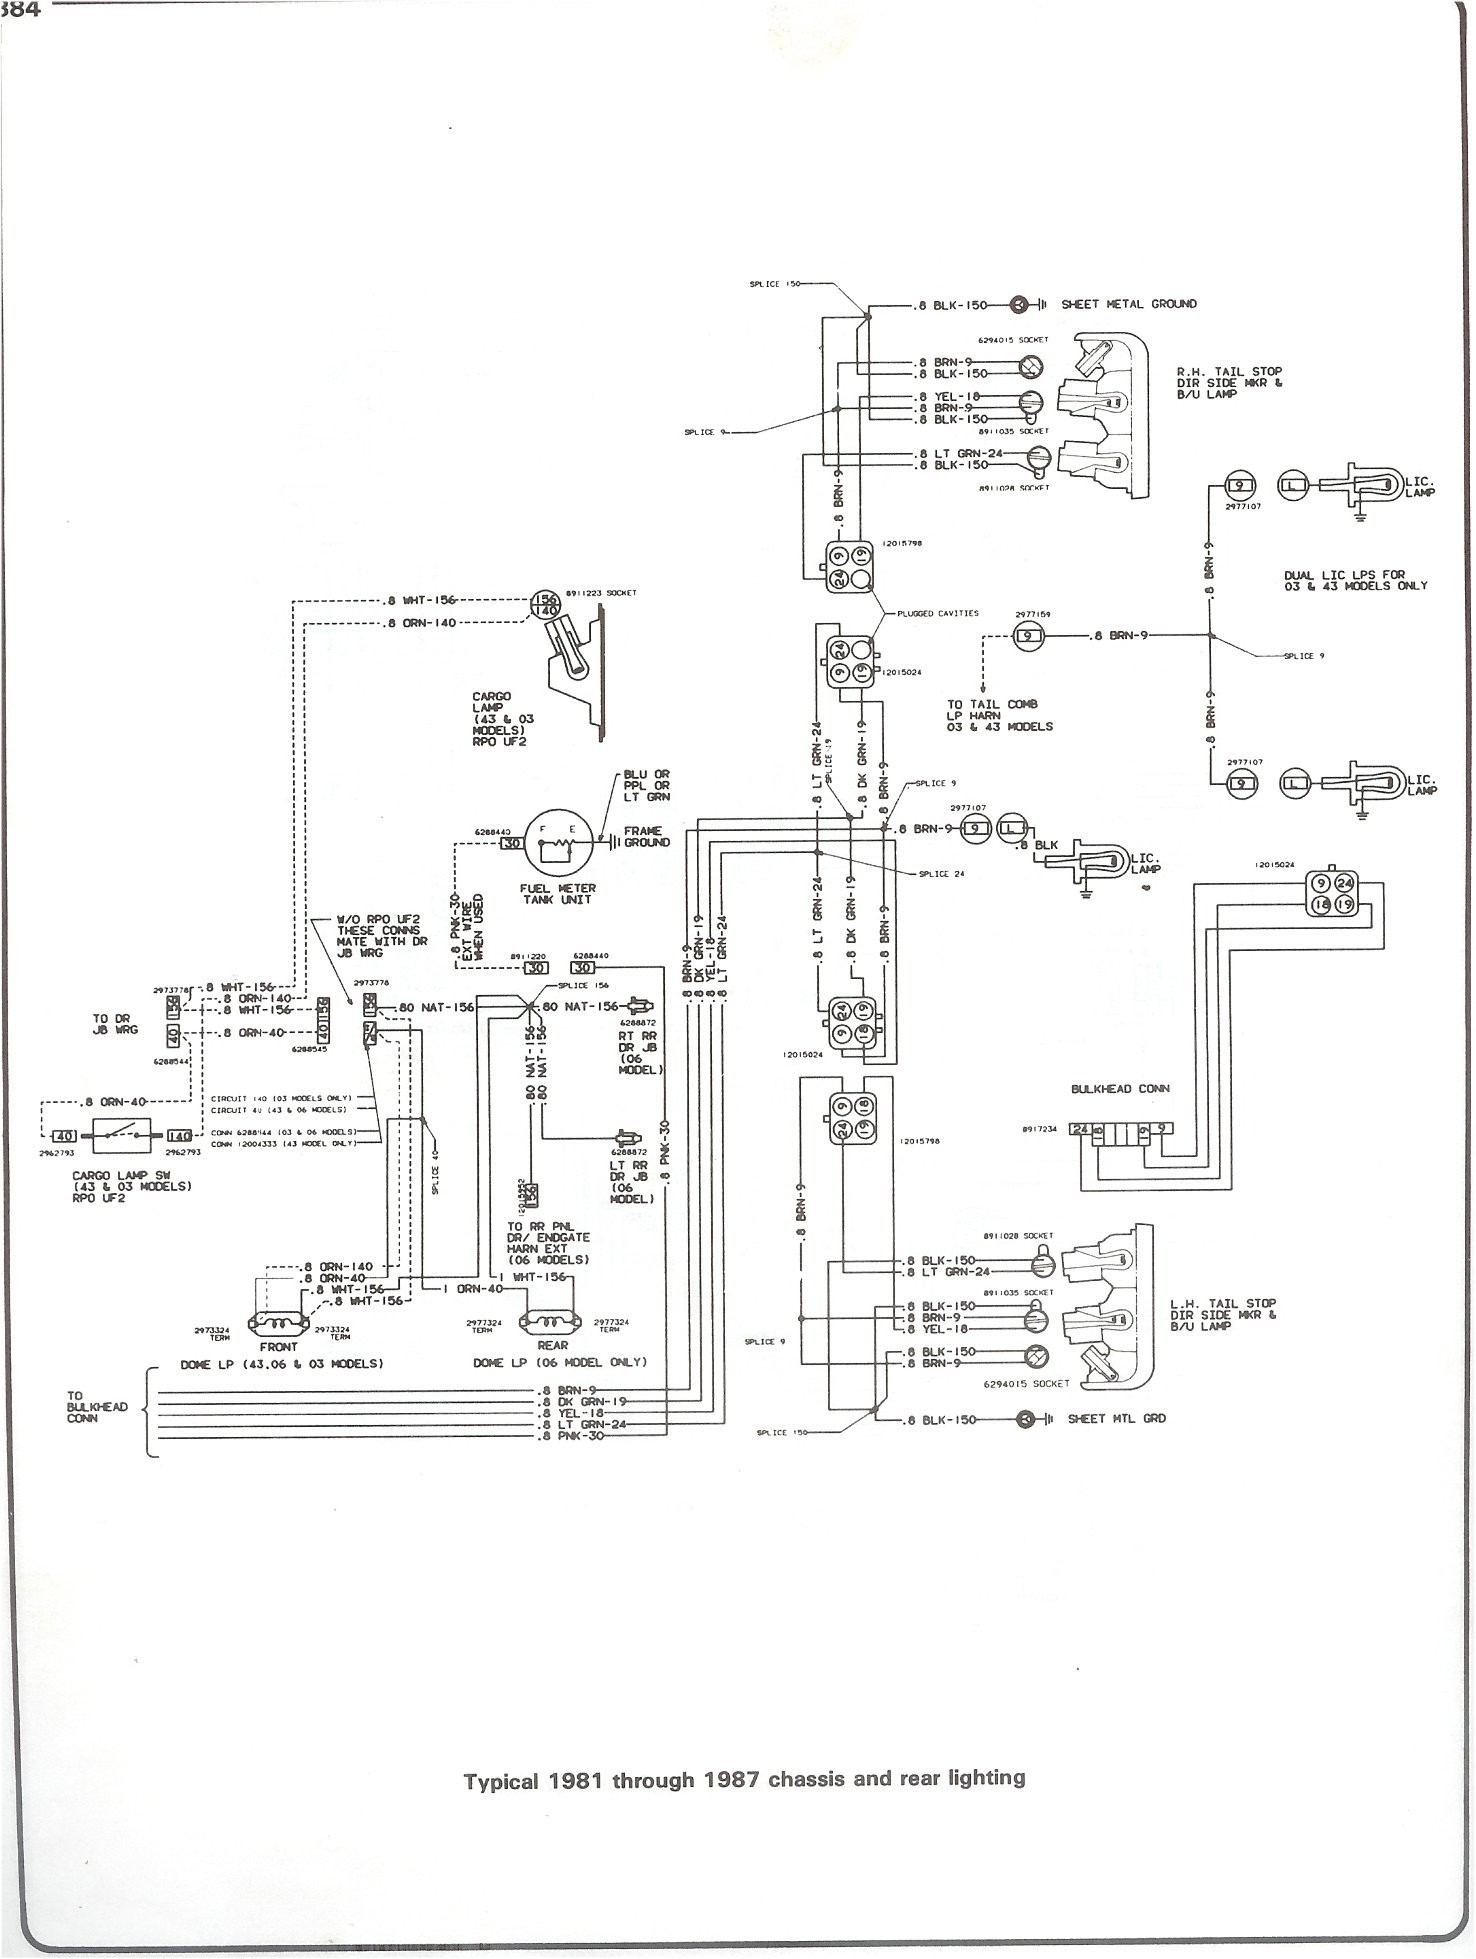 78 Chevy Truck Wiring Diagram 1976 Chevy Truck Wiring Schematic Wiring Diagram Options Of 78 Chevy Truck Wiring Diagram 1976 Chevy Truck Wiring Schematic Wiring Diagram Options